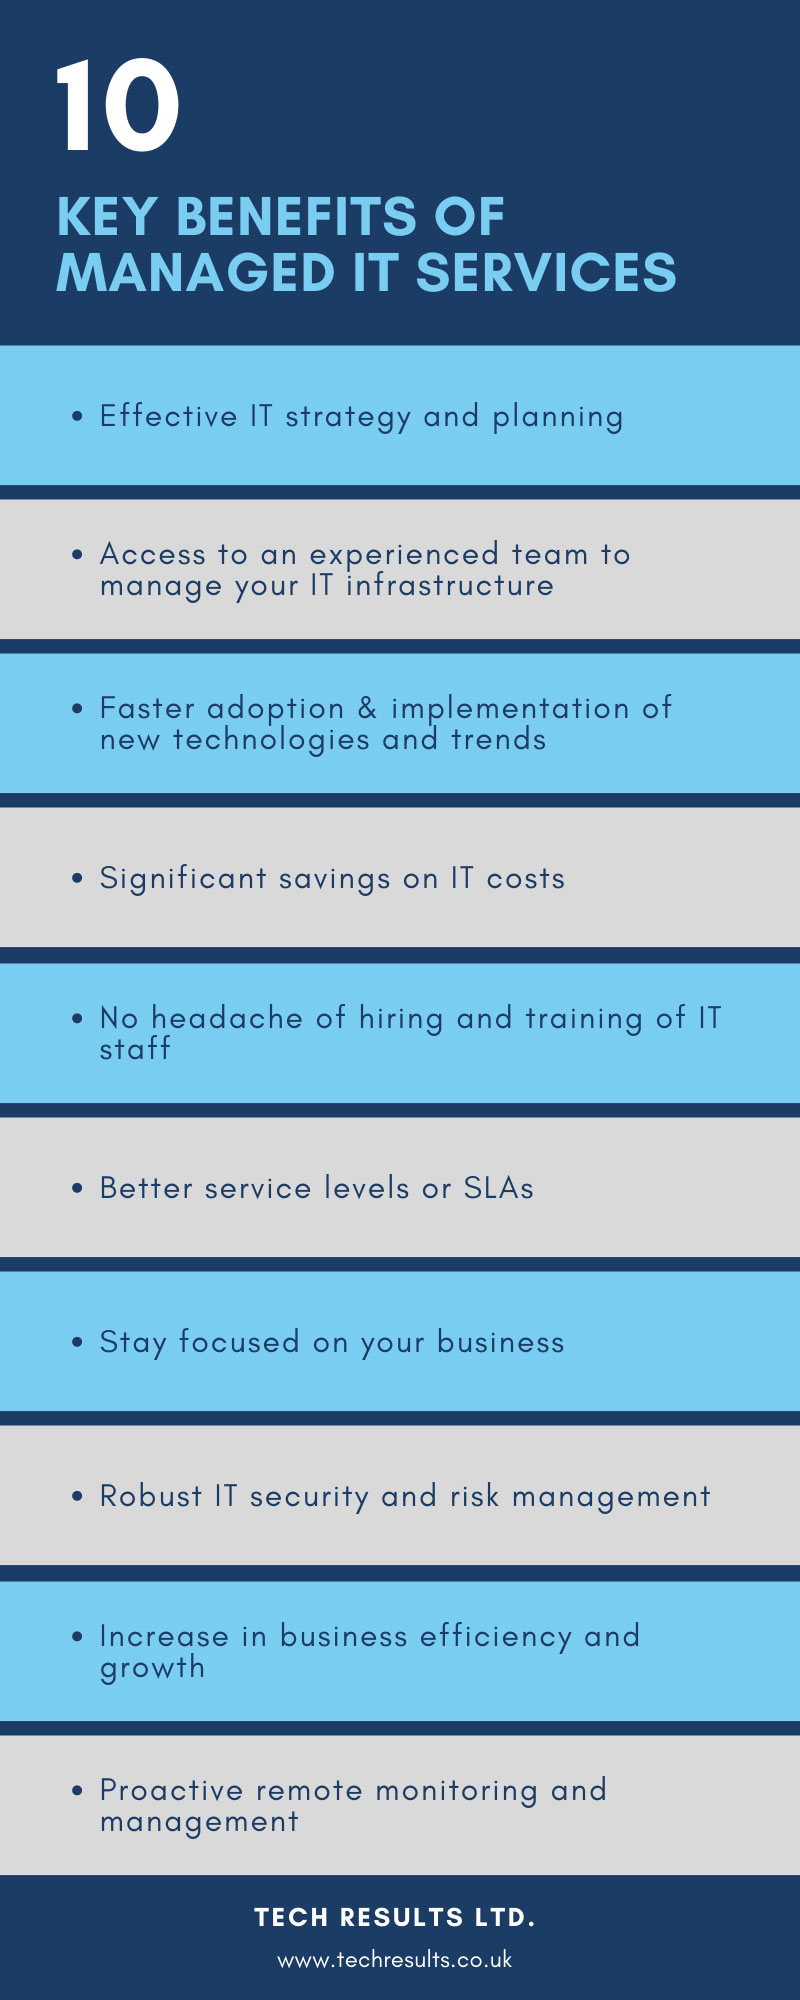 managed it services benefits infographic